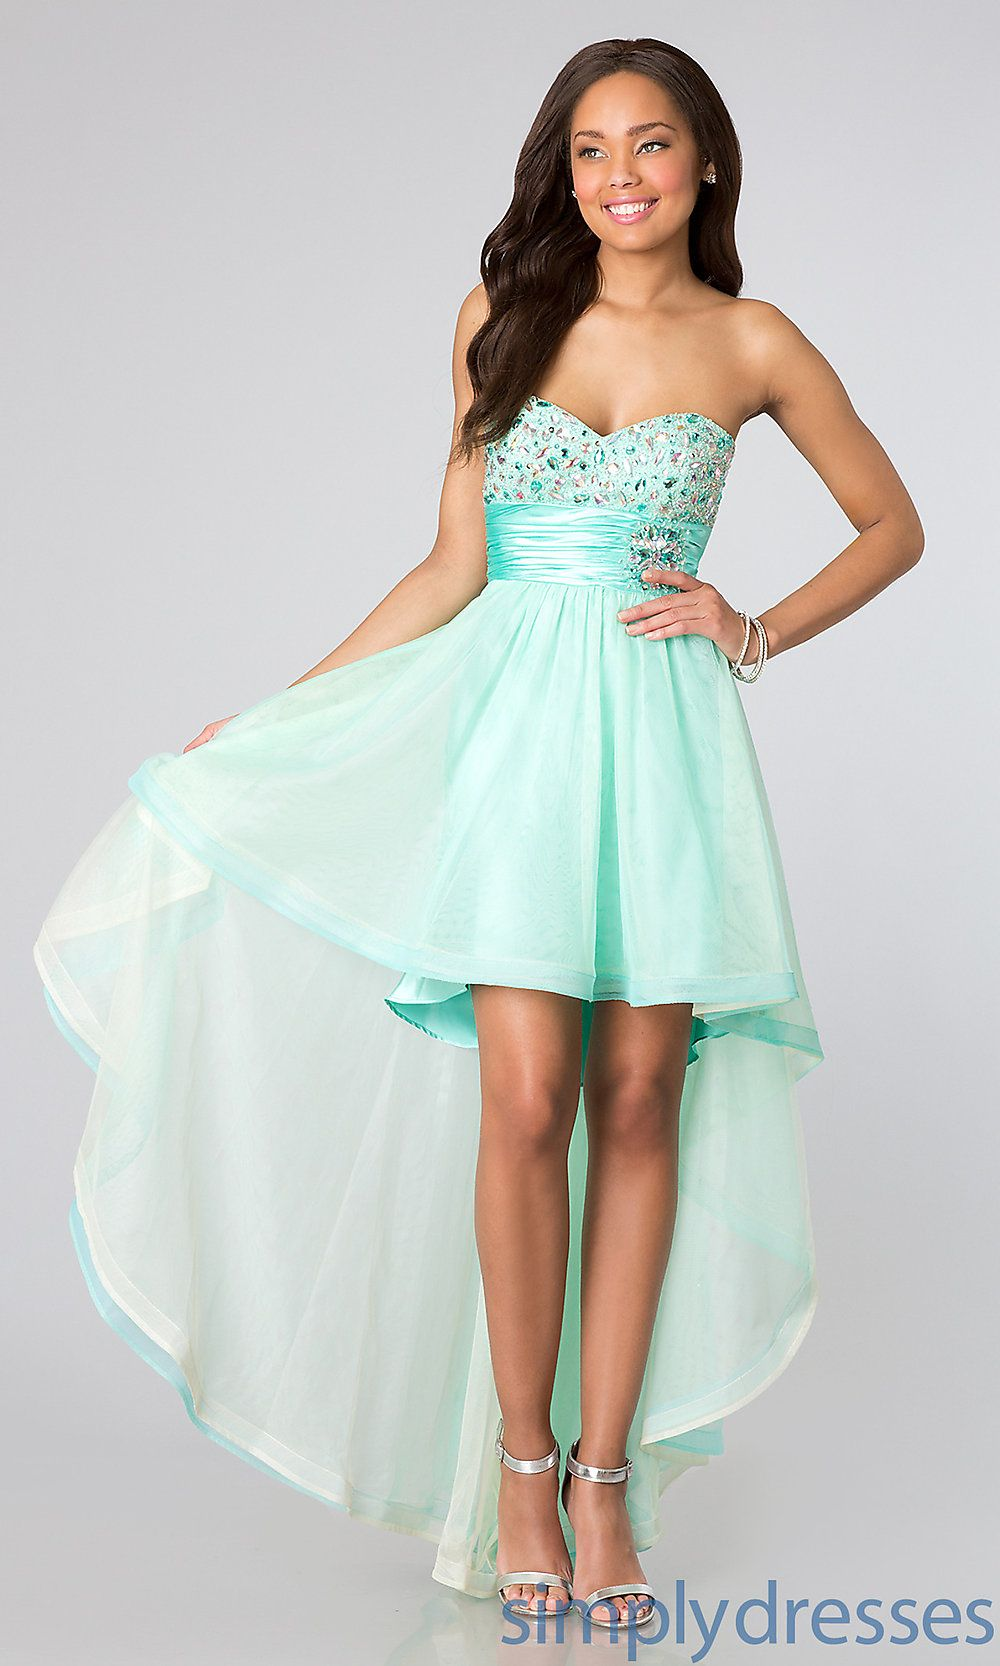 Bee Darlin Strapless High Low Party Dress -Simply Dresses   High ...